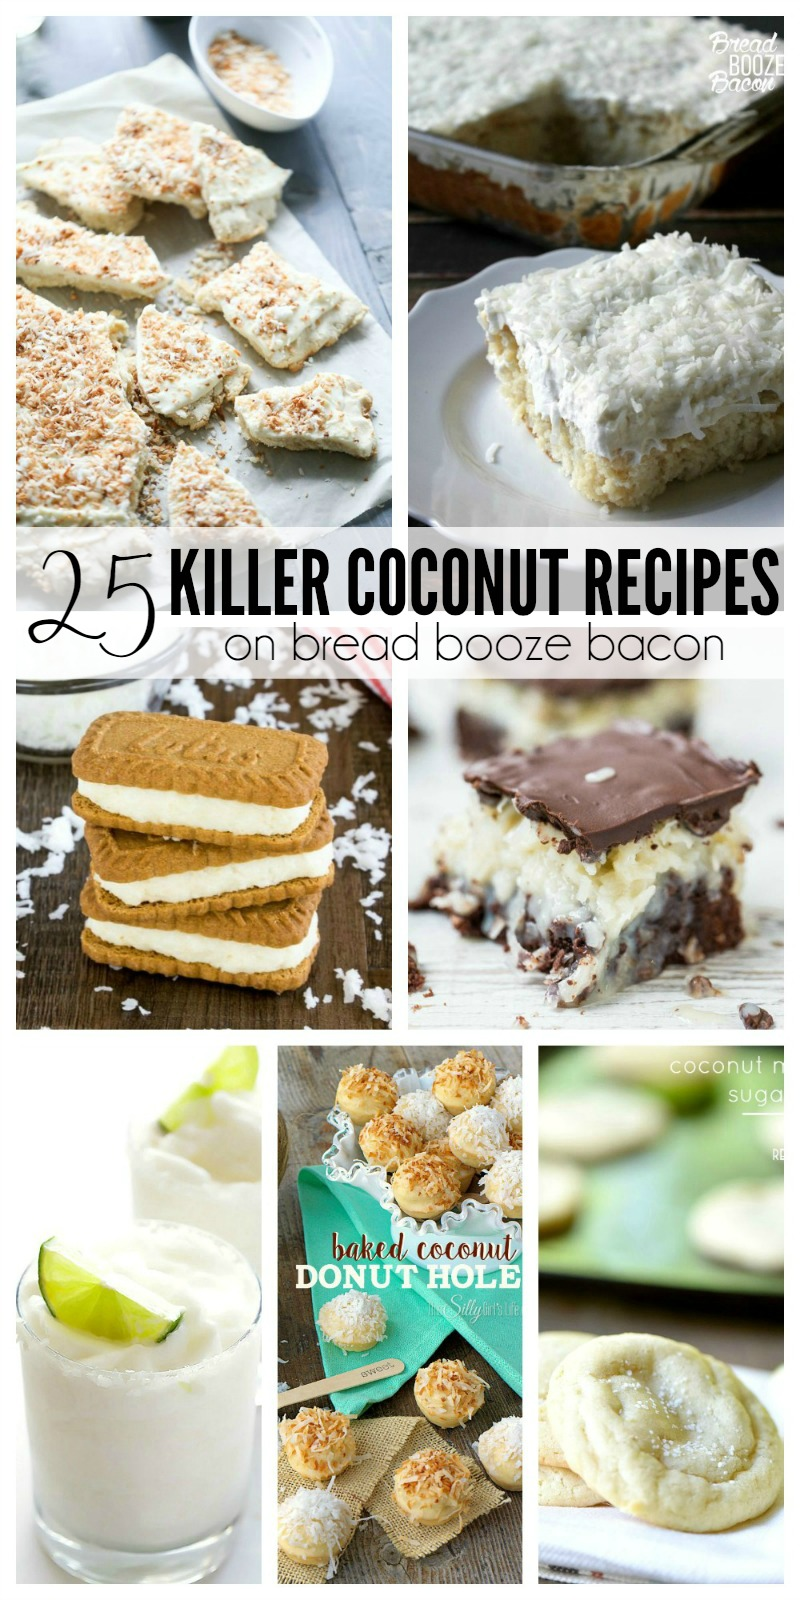 Coconut is one of my favorite flavors, especially around summer time. Pair it with some lime or chocolate, or let it's own fabulous flavor shine through! No matter how you like your coconut, these 25 Killer Coconut Recipes will satisfy your craving!